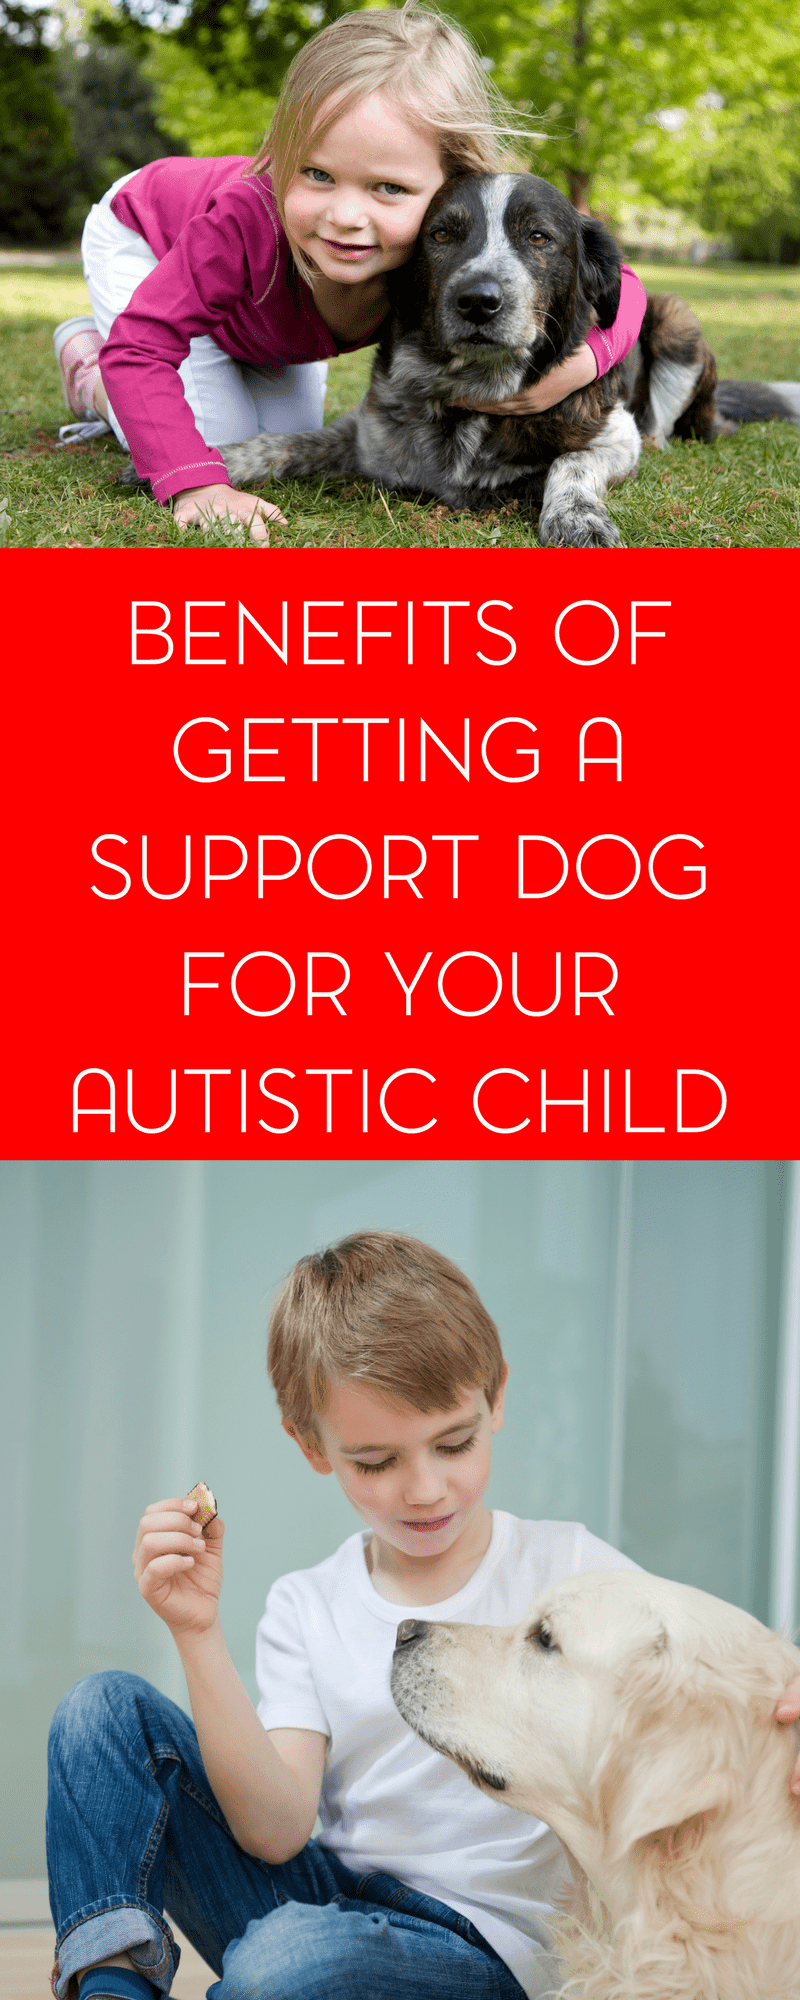 A therapy or support dog can be incredibly beneficial for autistic child. Non verbal autistic children, in particular, may benefit in so many ways.